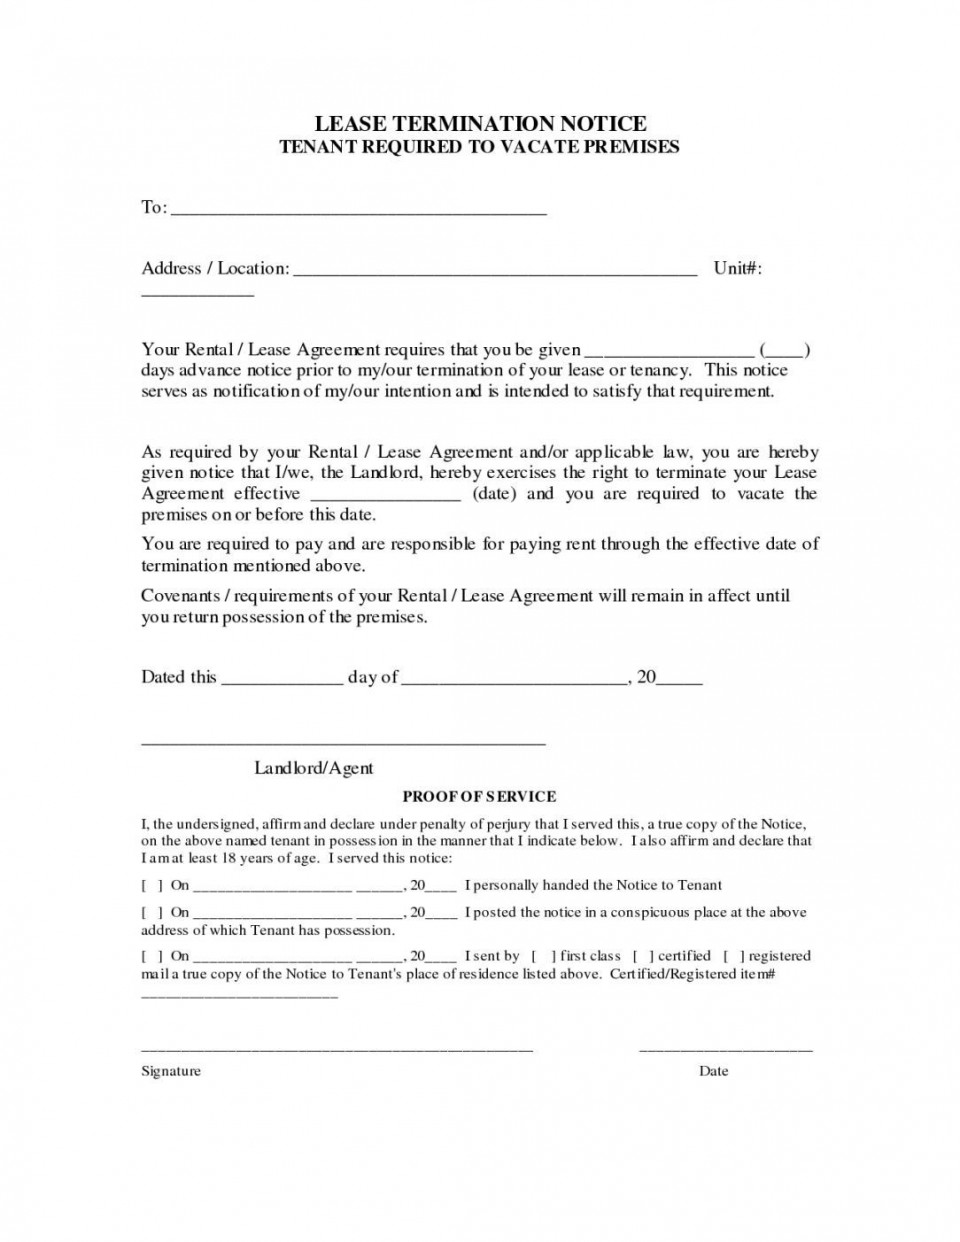 000 Archaicawful Renter Lease Agreement Form Inspiration  Rent Format In Tamil Florida Rental Printable960